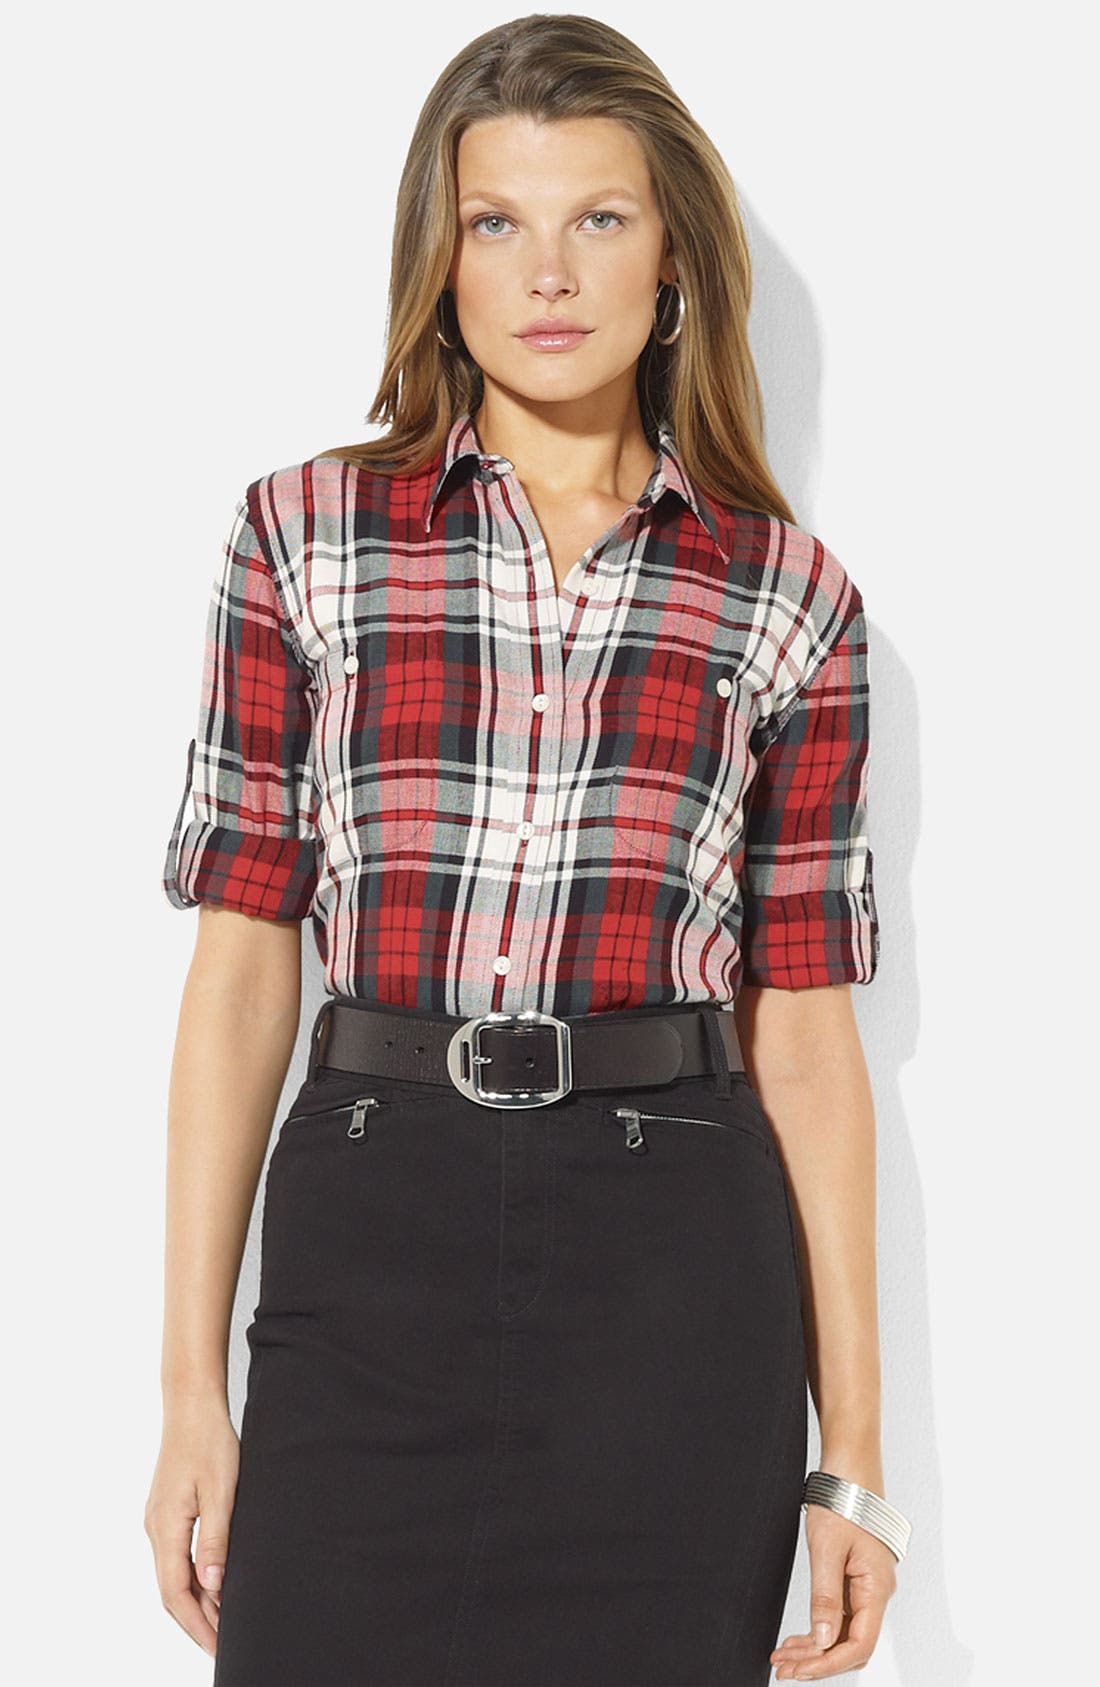 Alternate Image 1 Selected - Lauren Ralph Lauren Roll Sleeve Plaid Shirt (Petite) (Online Exclusive)